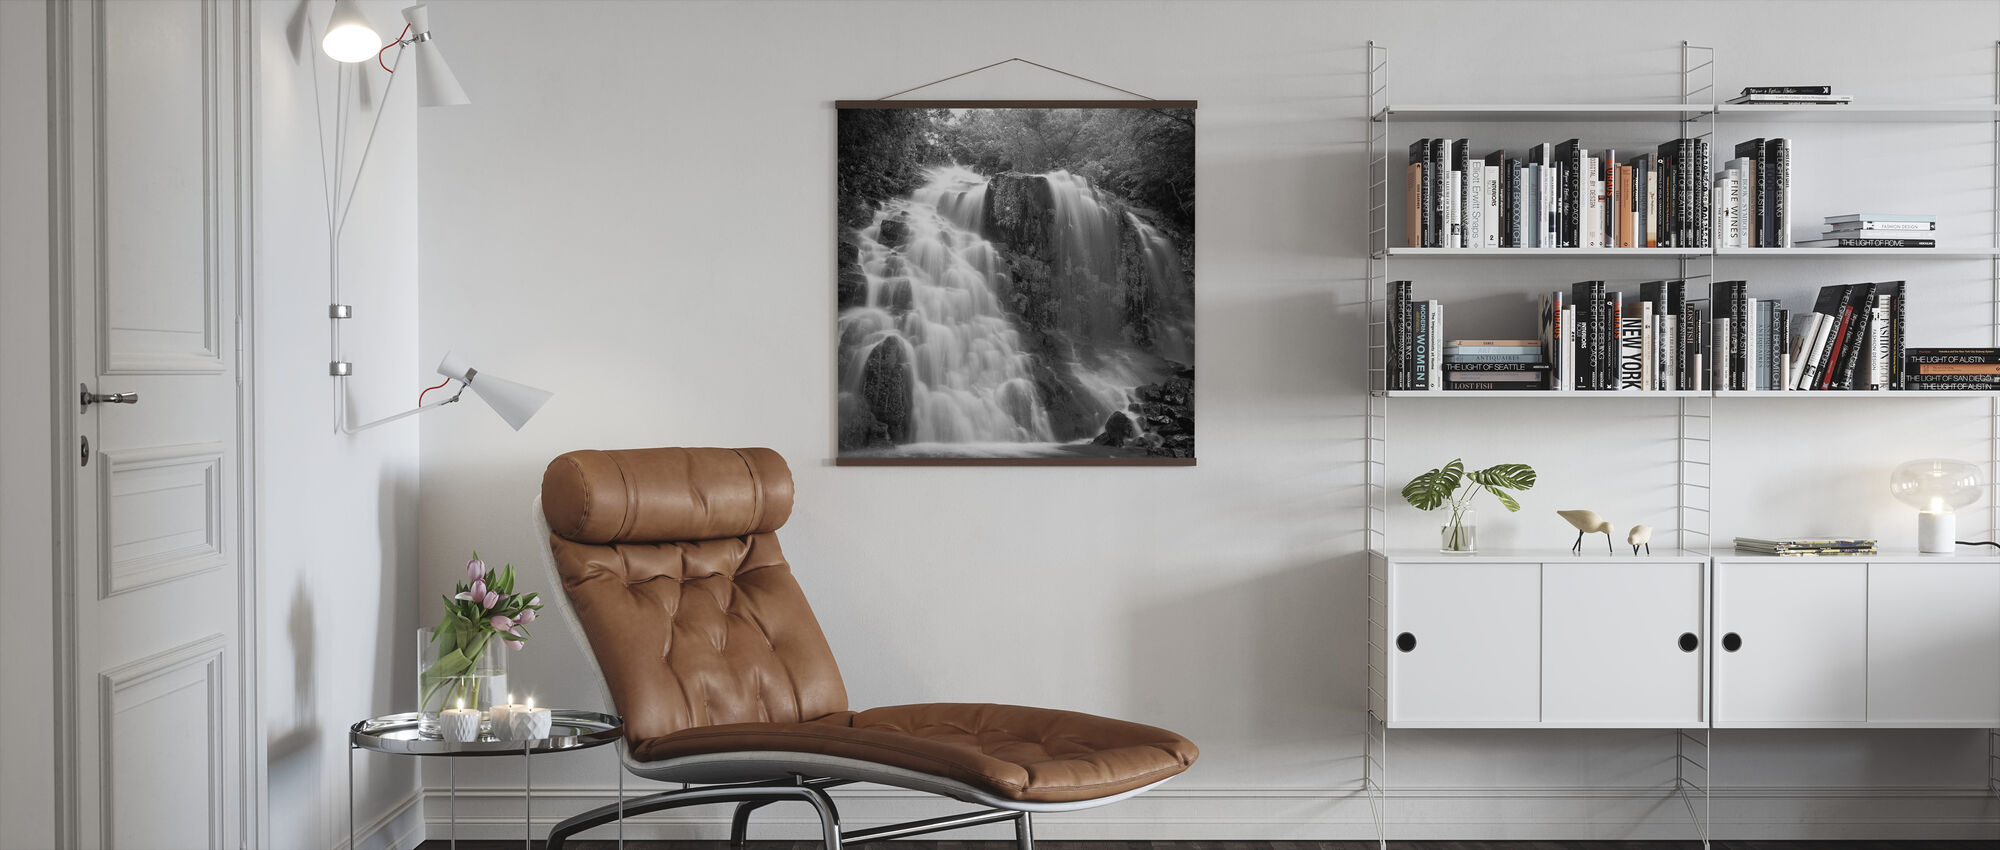 Nature Scenery - b/w - Poster - Living Room